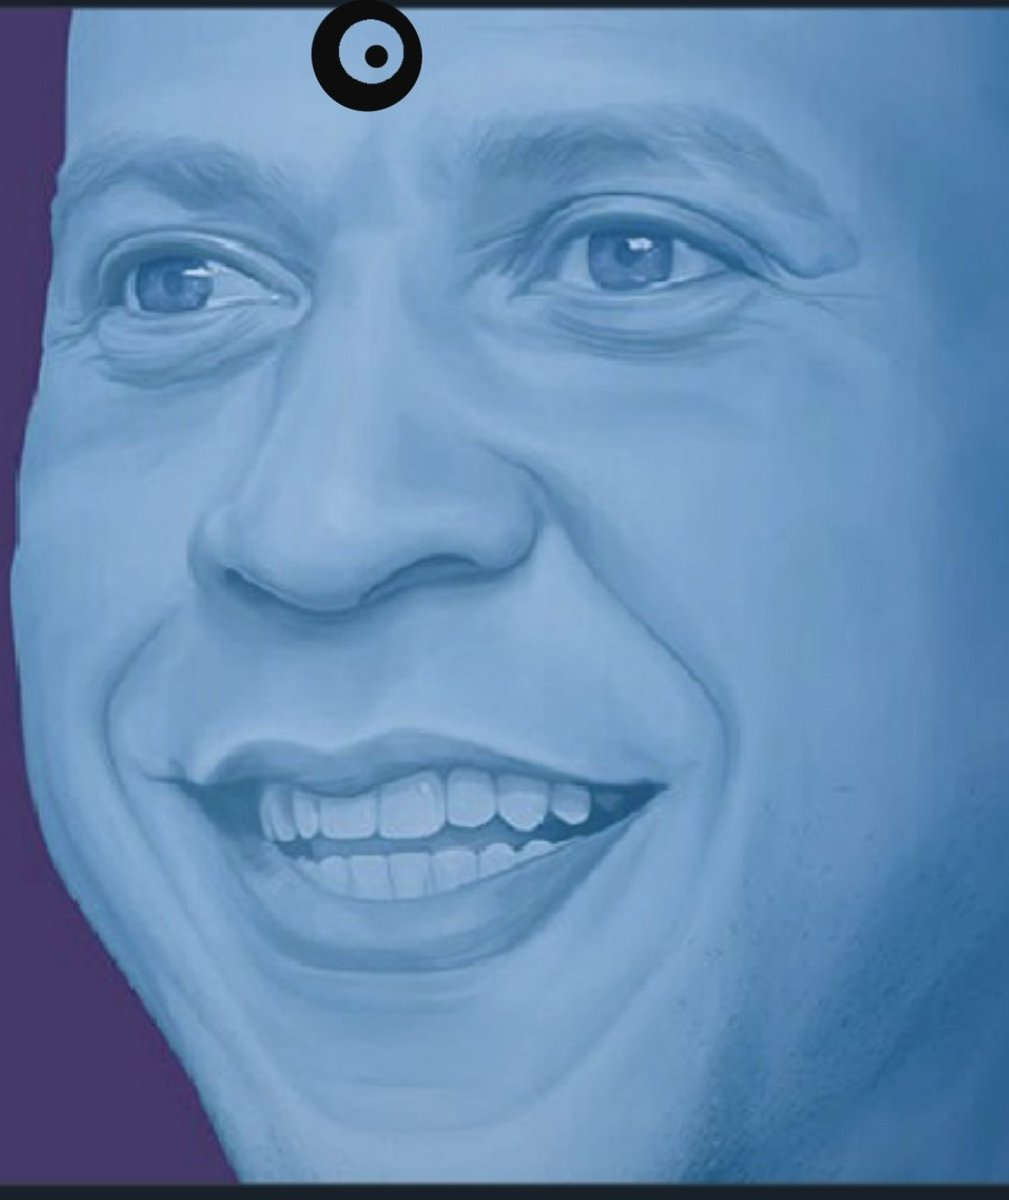 @TheWeekly @nytopinion @CoryBooker https://t.co/YOsk15804y